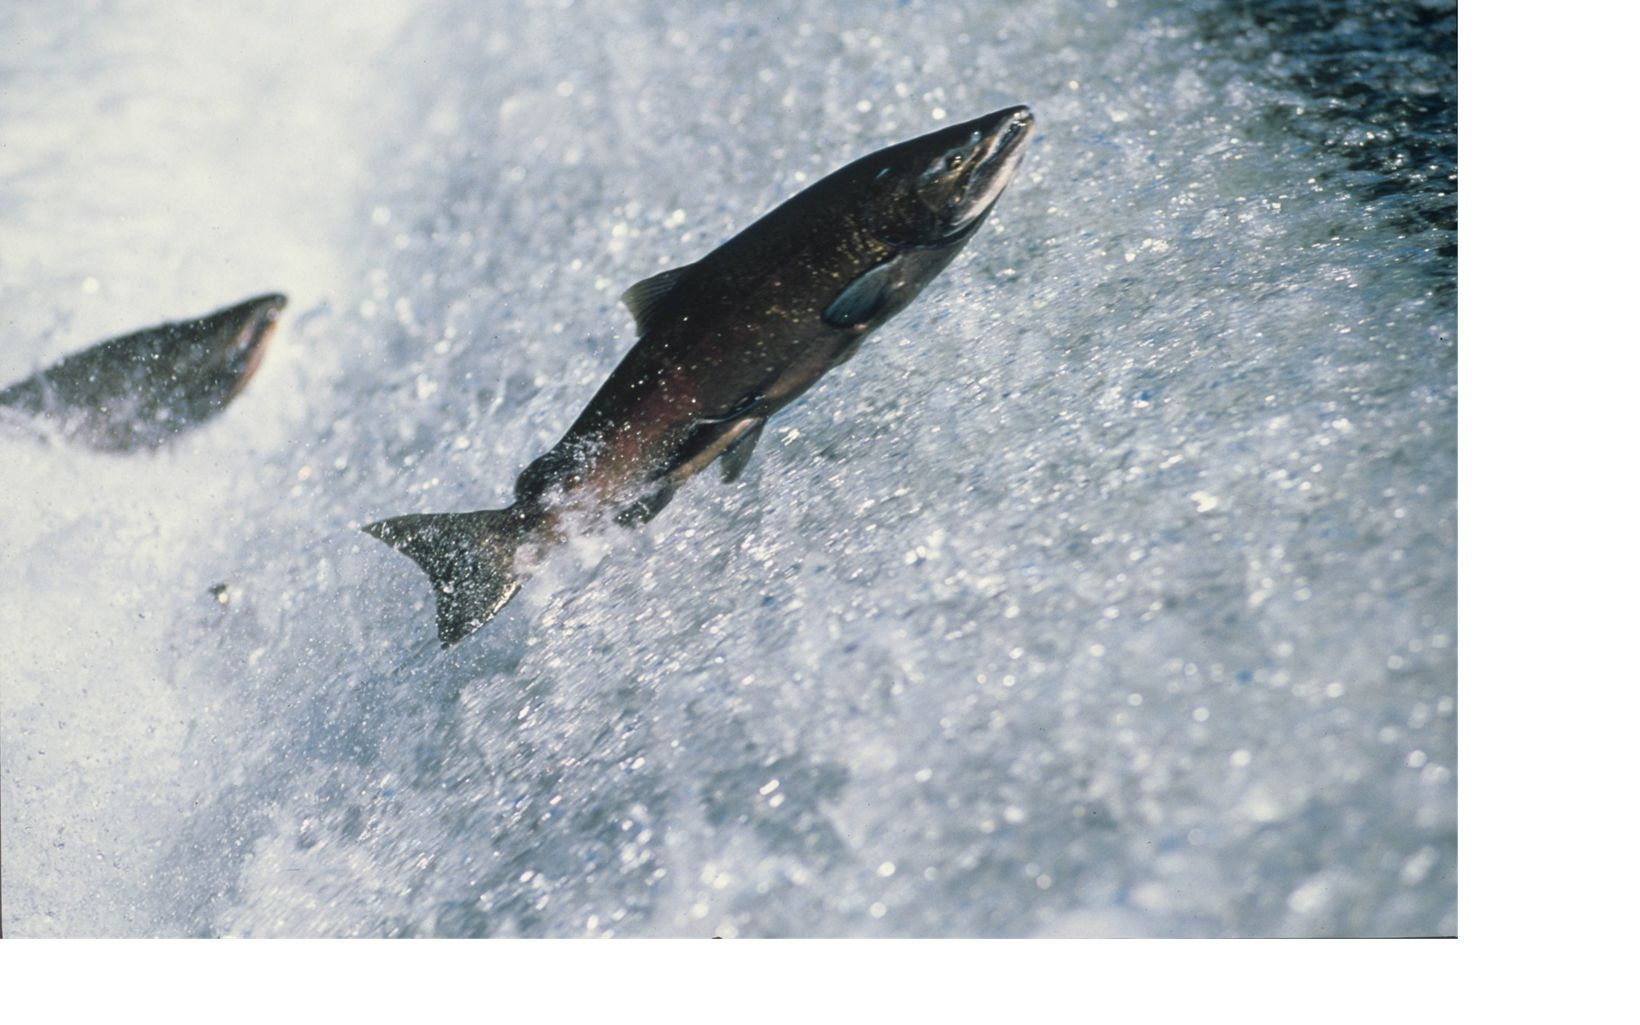 salmon jumping out of the water as it swims upstream